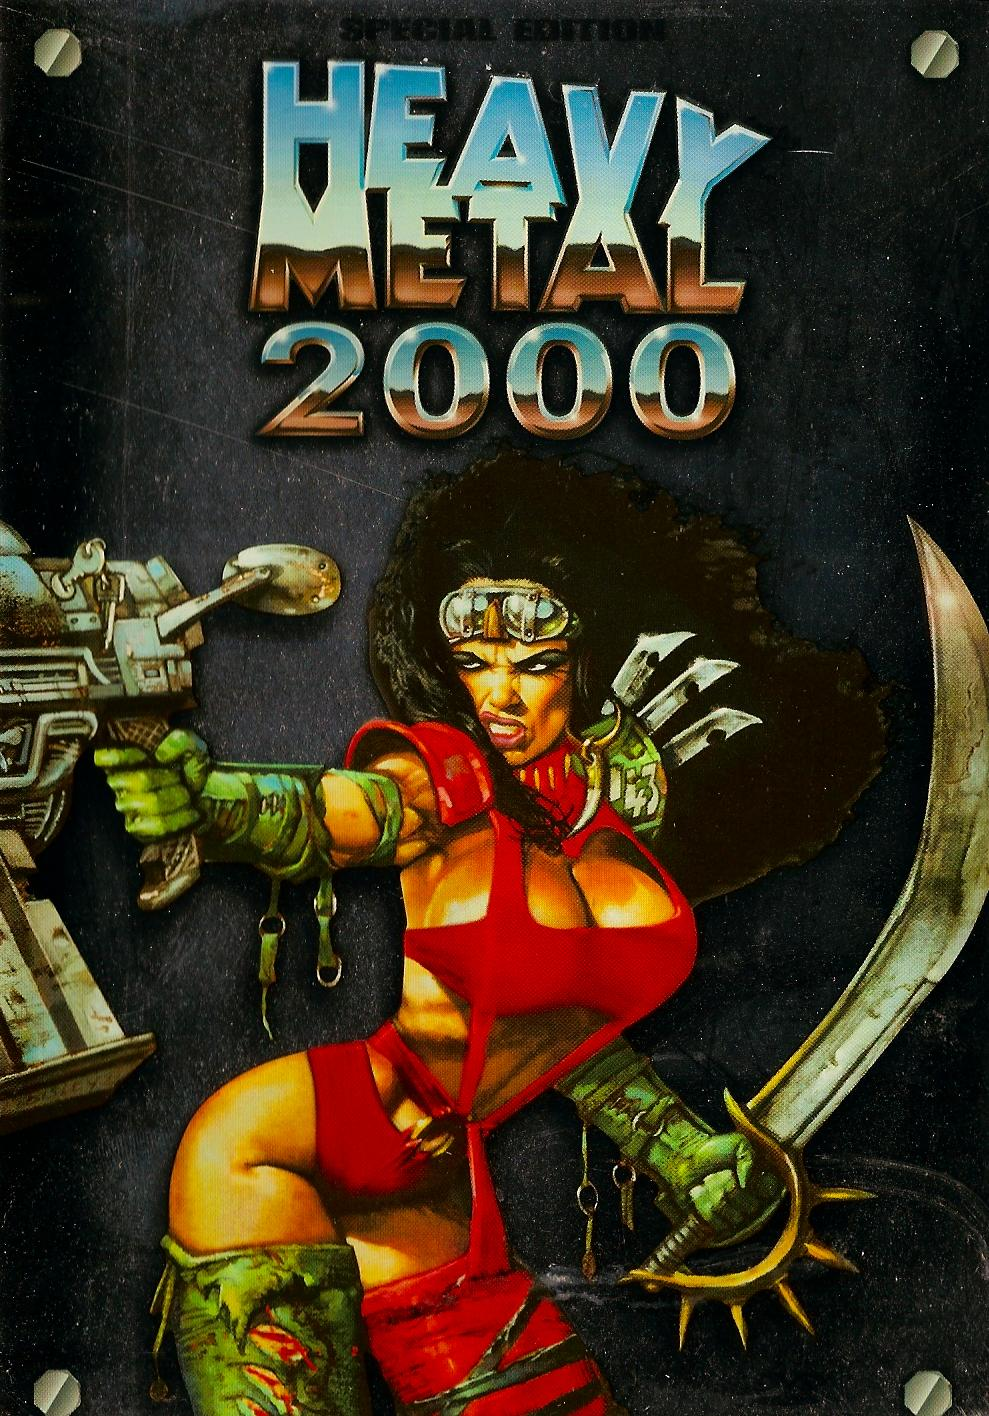 More Boobs Than Brain: Why HEAVY METAL 2000 is So Forgettable 20 Years Later